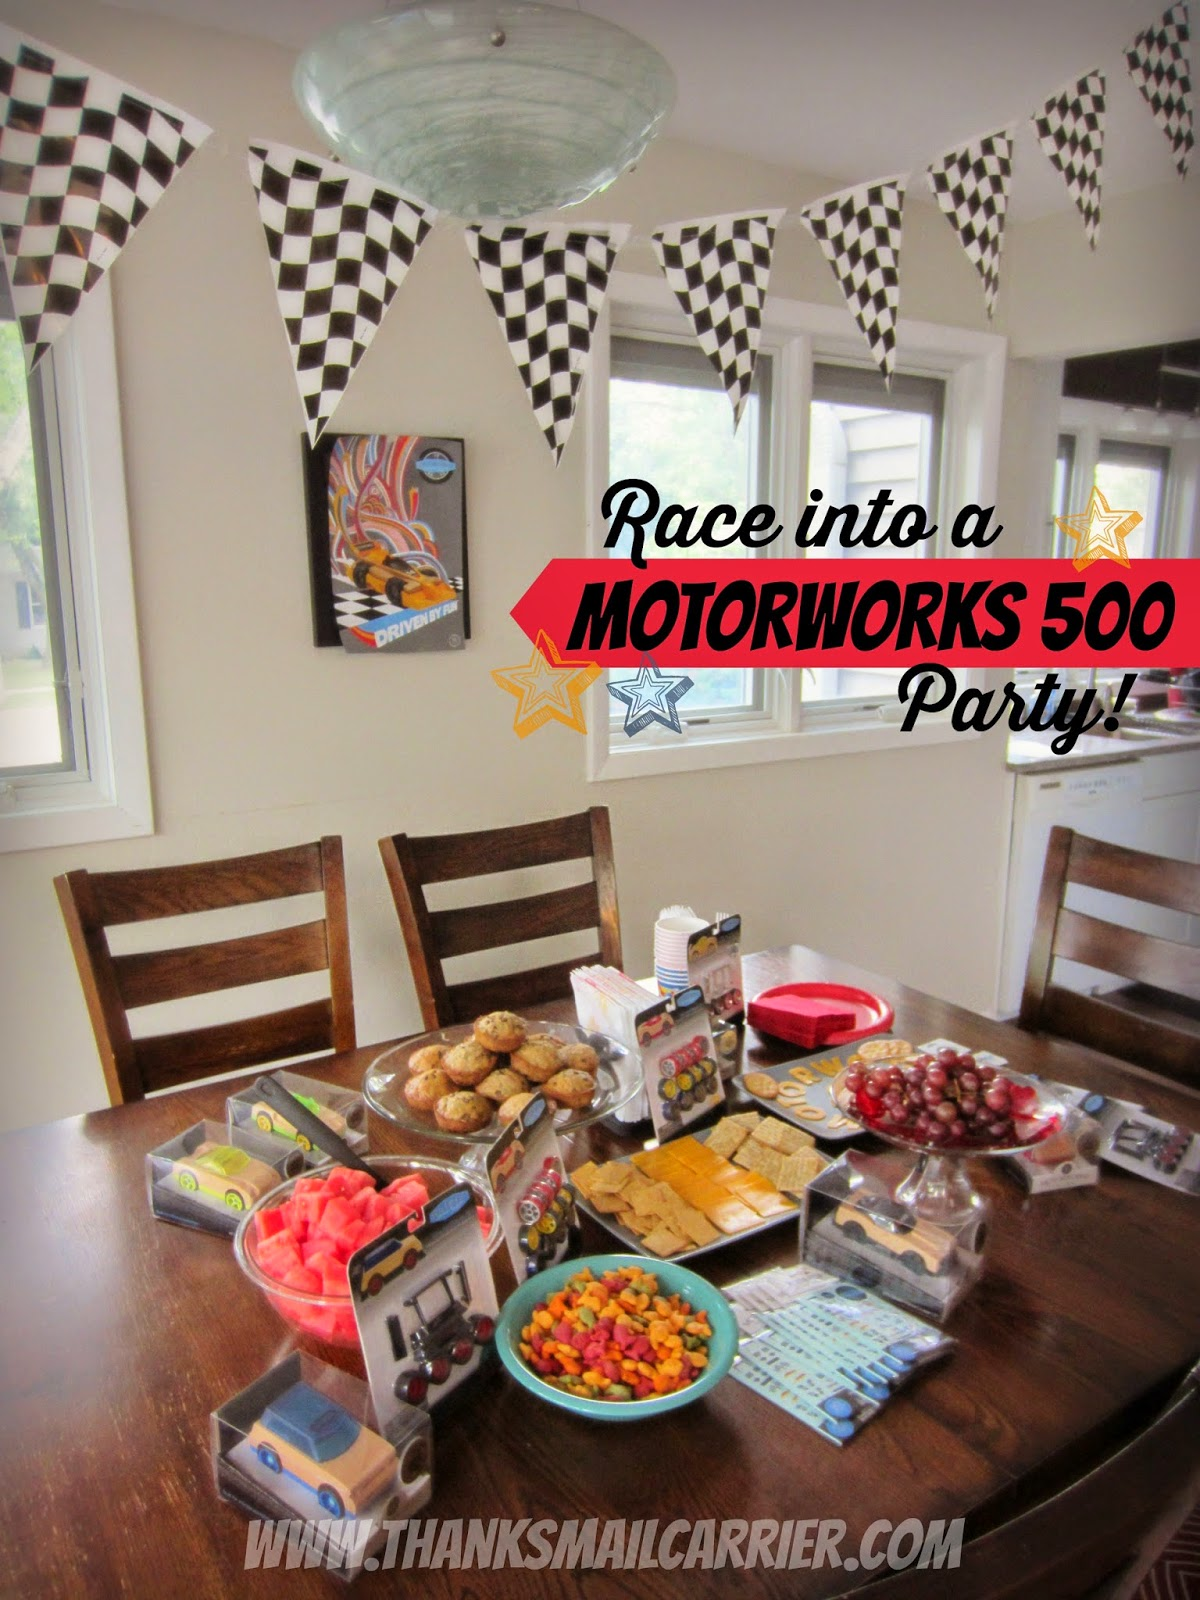 Motorworks 500 party